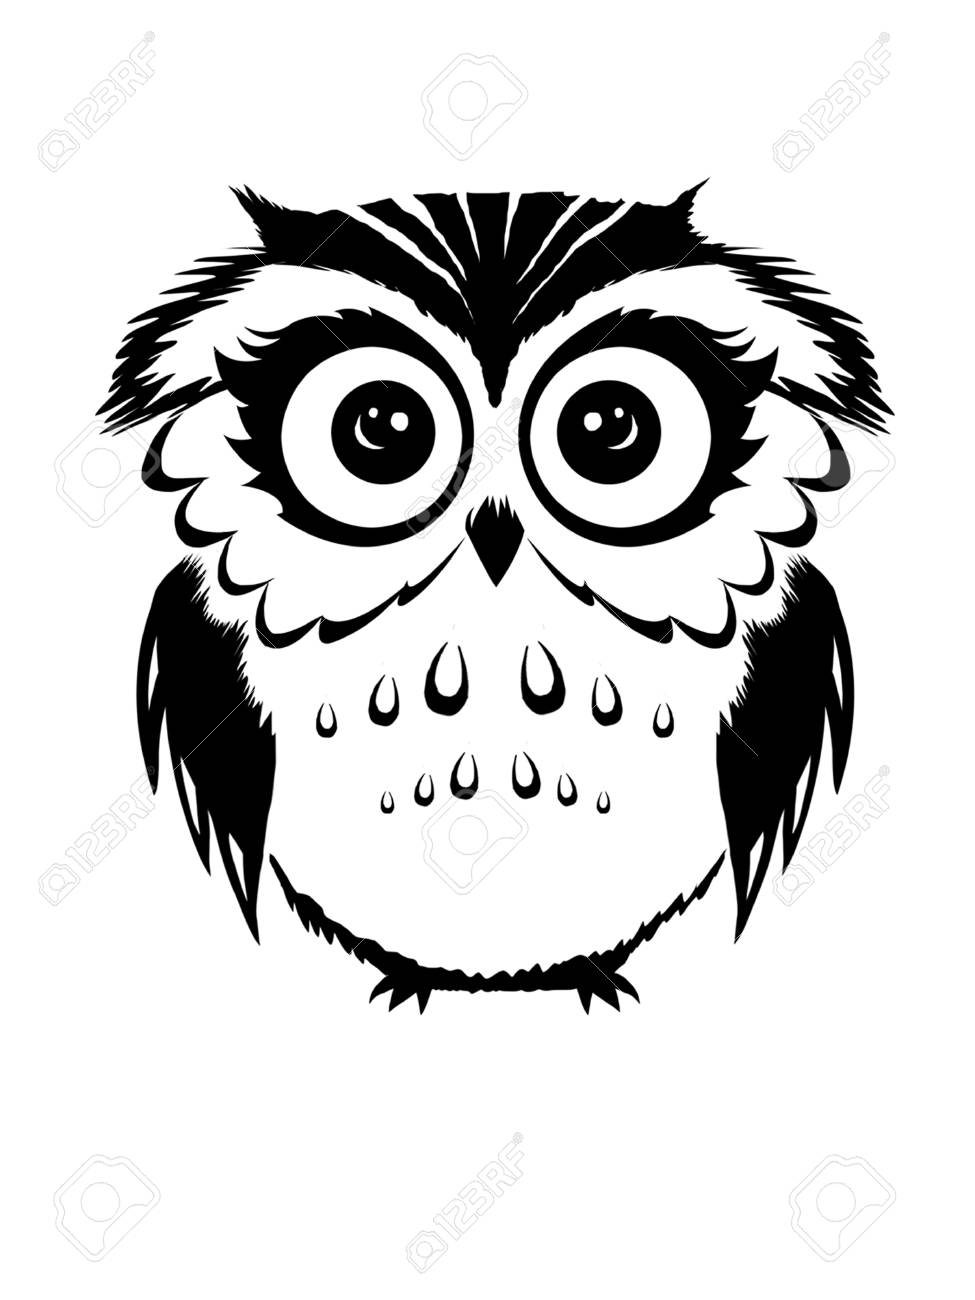 Cute owl black and white